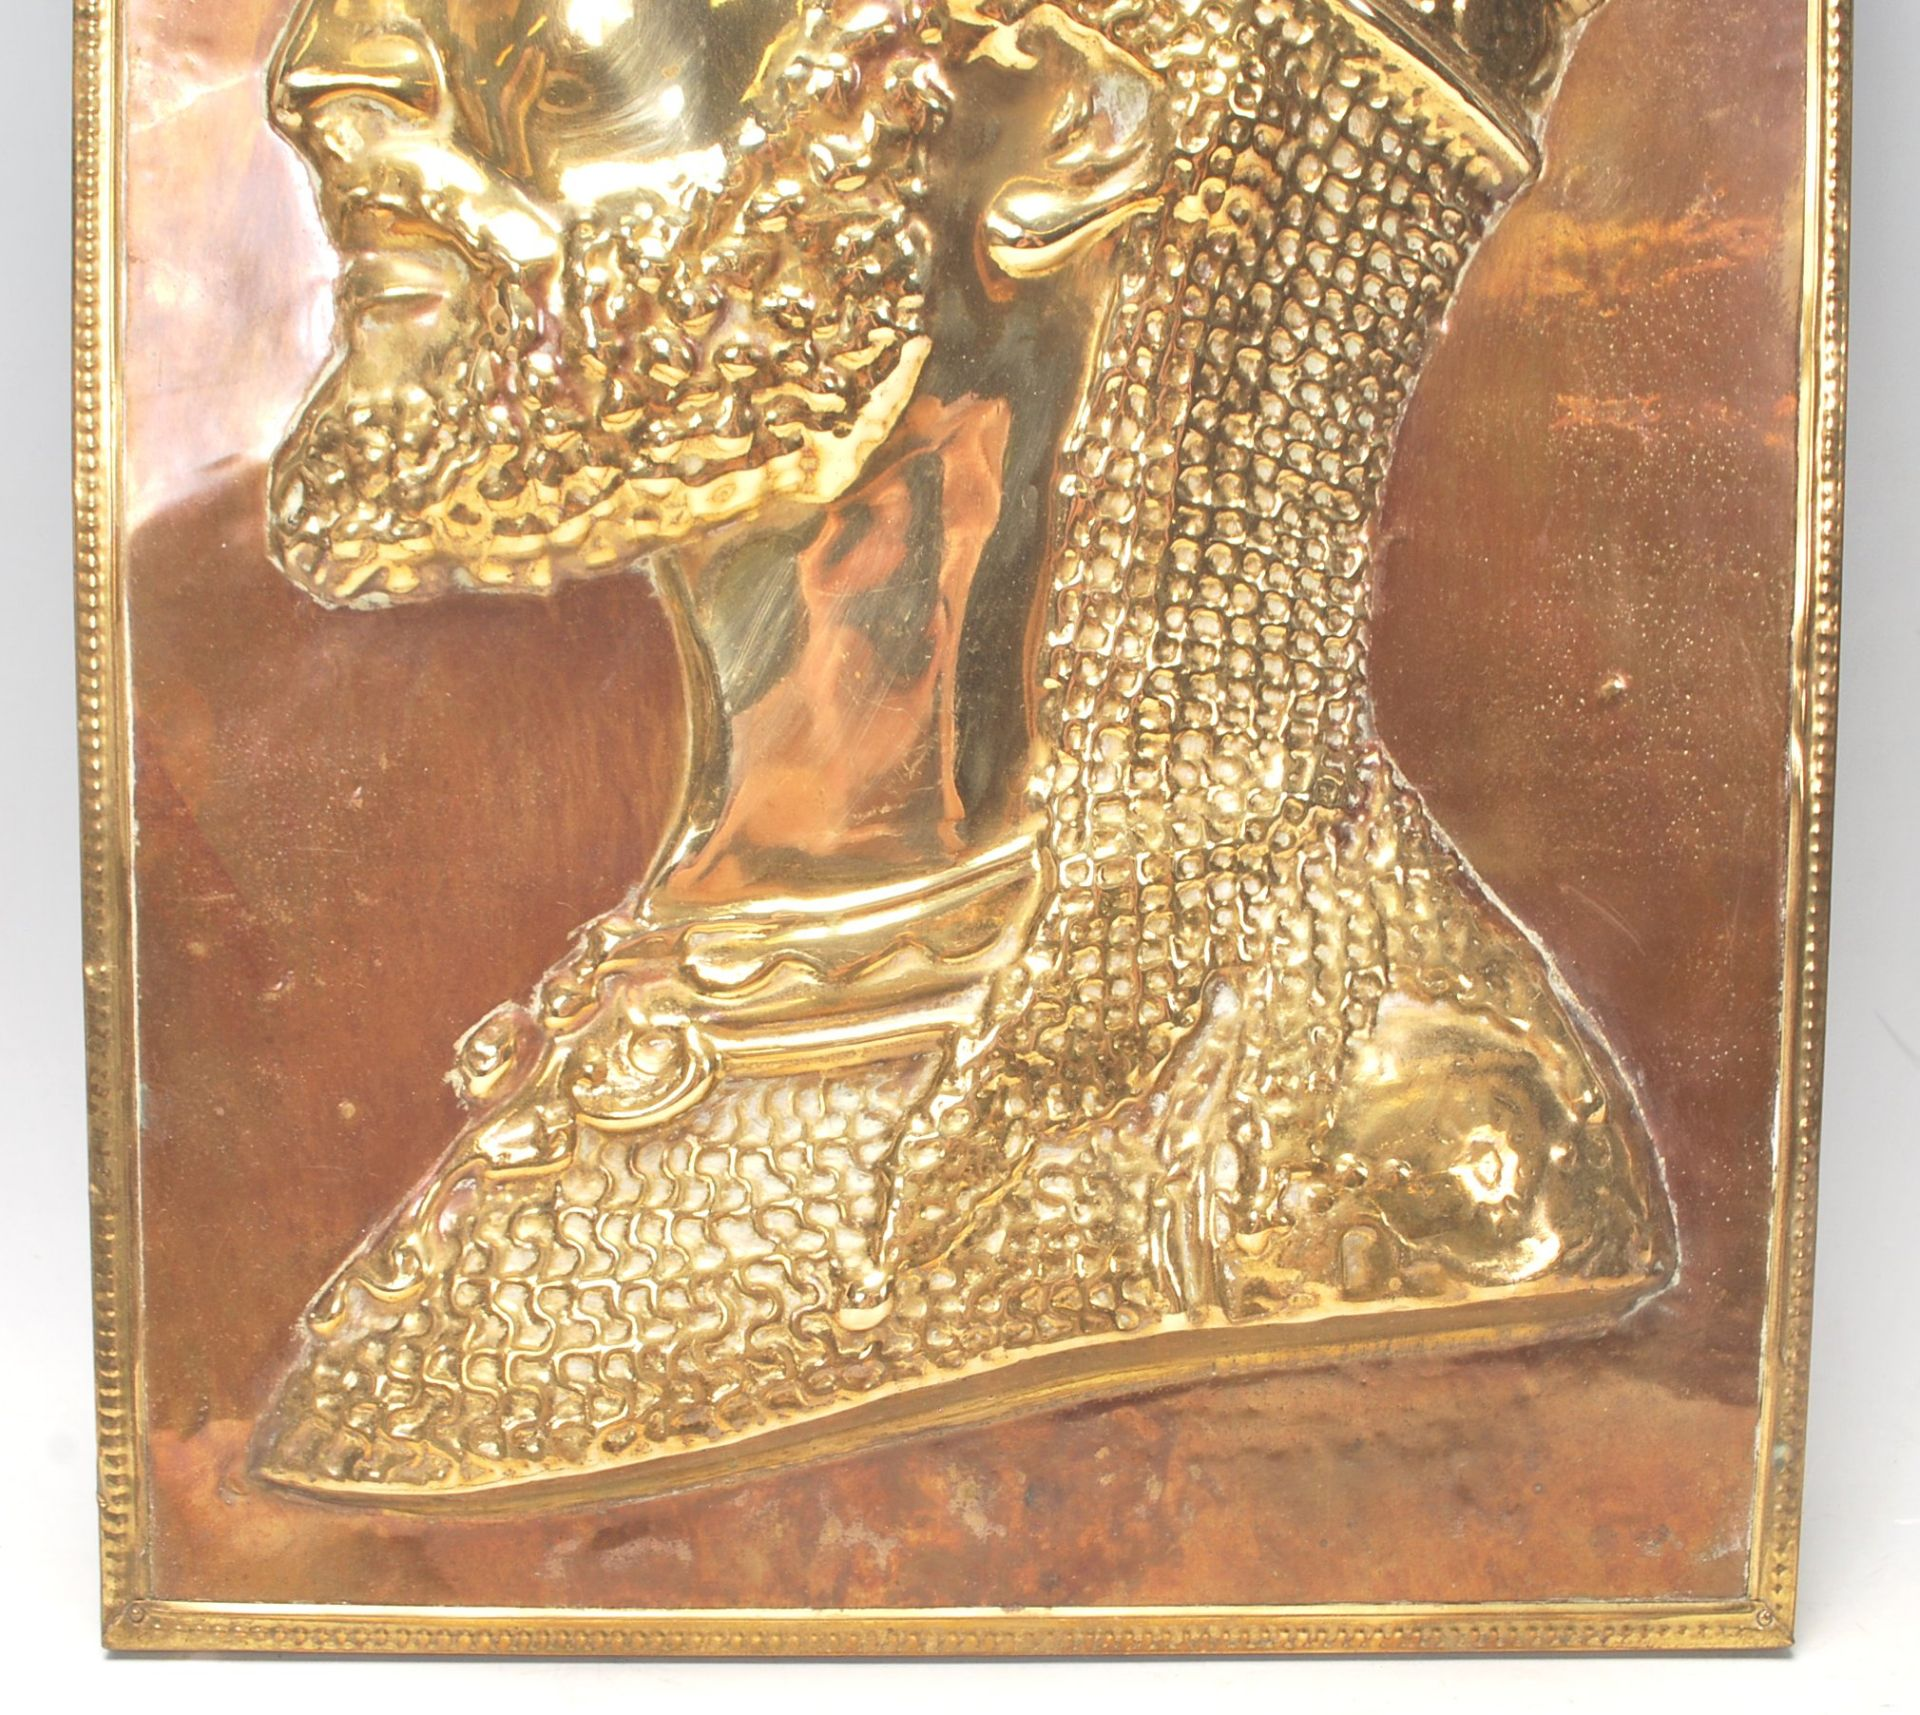 Los 223 - An vintage early 20th Century Islamic brass picture of a Syrian / Ottoman soldier in profile set